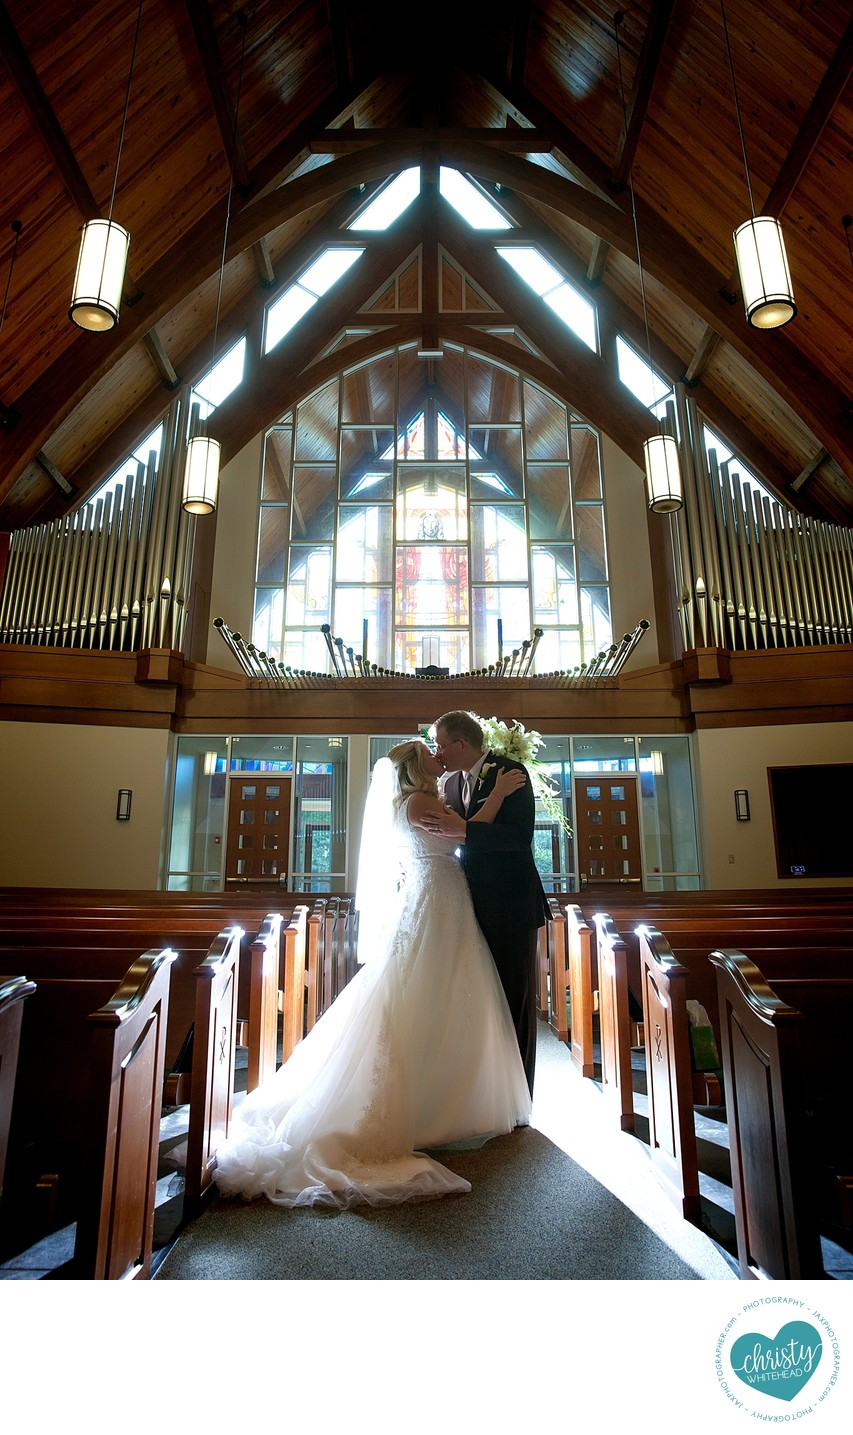 Gorgeous church wedding portrait